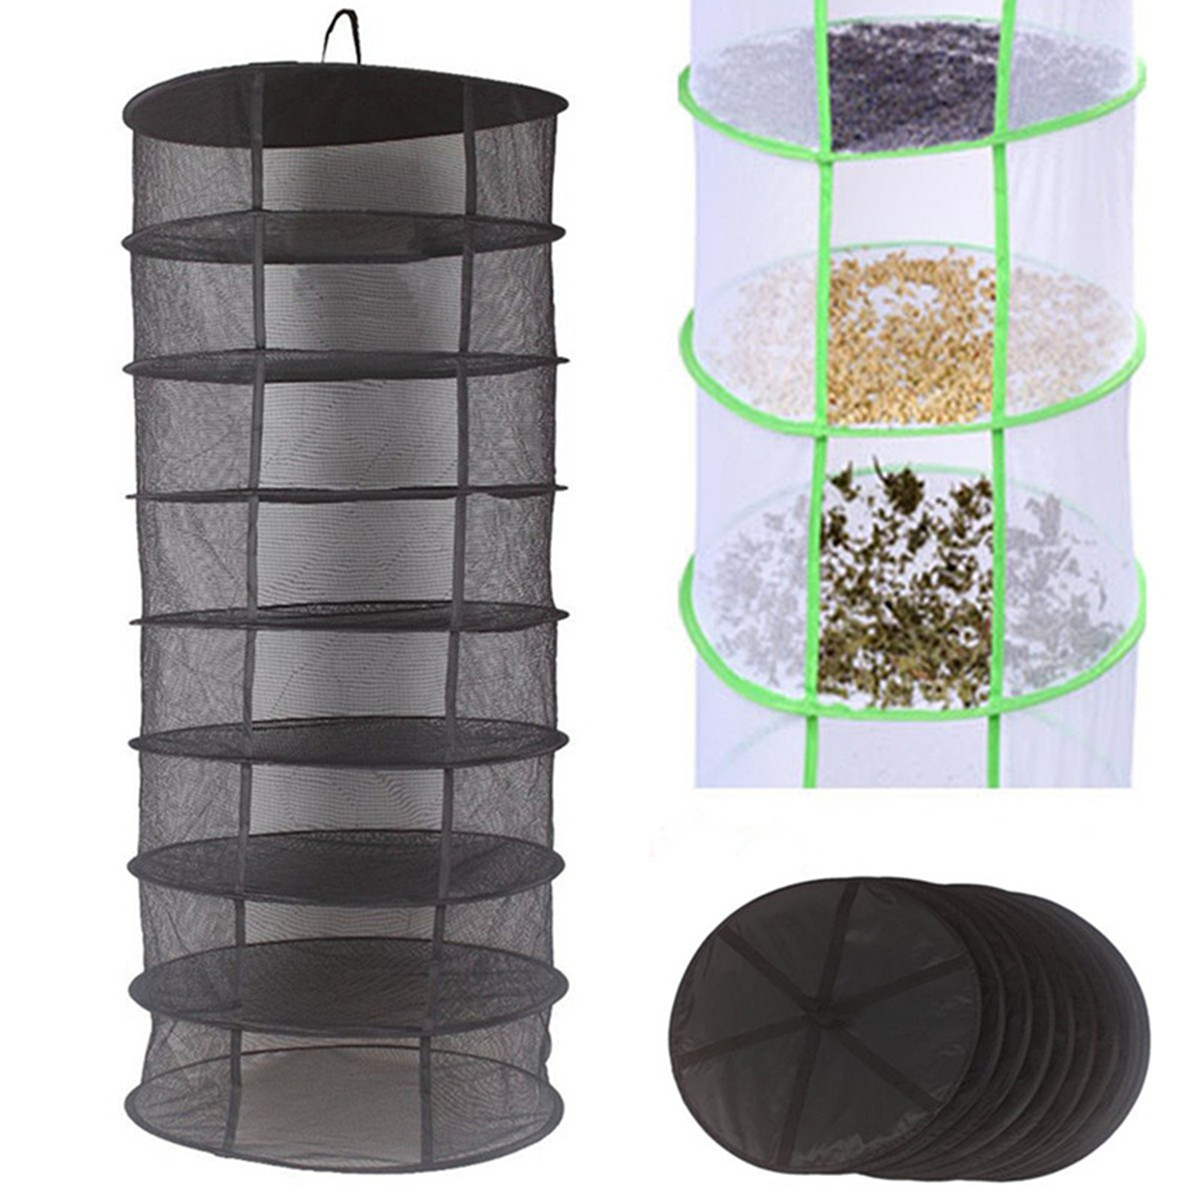 Hydroponic Herb Plant Bud Dryer Heavy Duty Folding Hanging 8 Tier Drying Rack Dry Shelf Net Clothes Laundry Basket Dryer 60cm